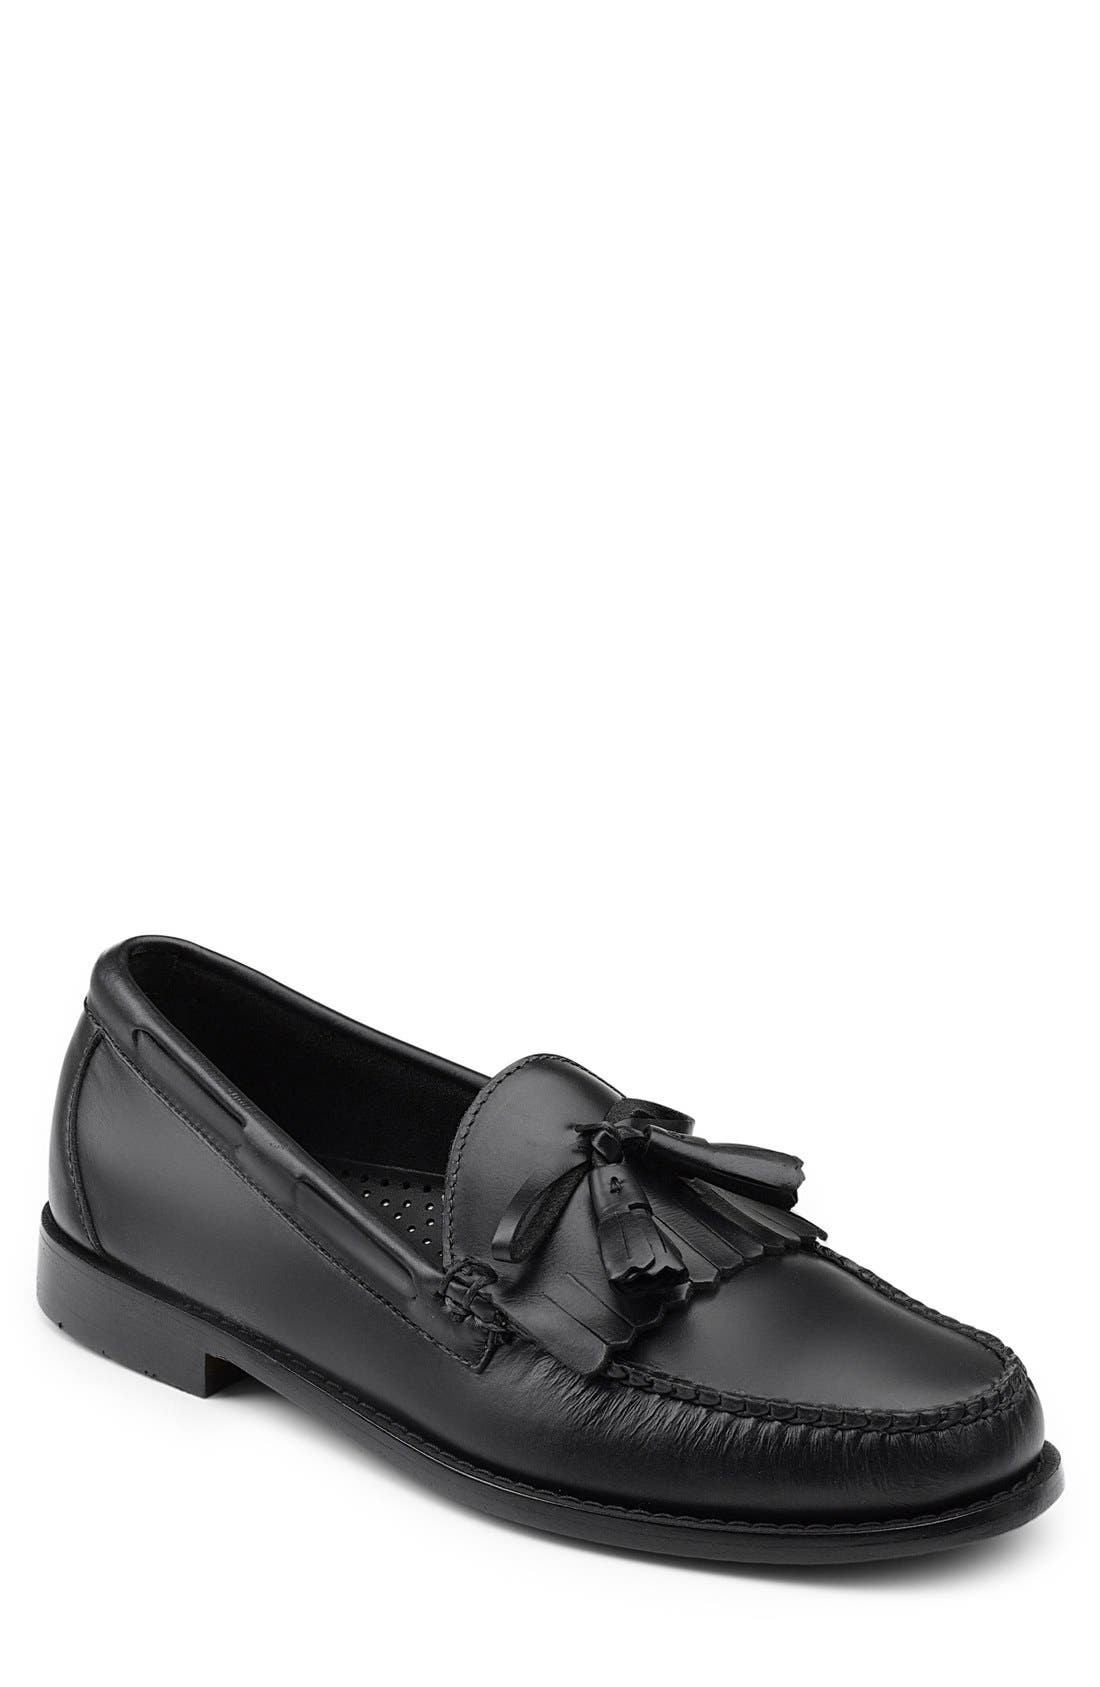 'Lawrence' Tassel Loafer,                             Main thumbnail 1, color,